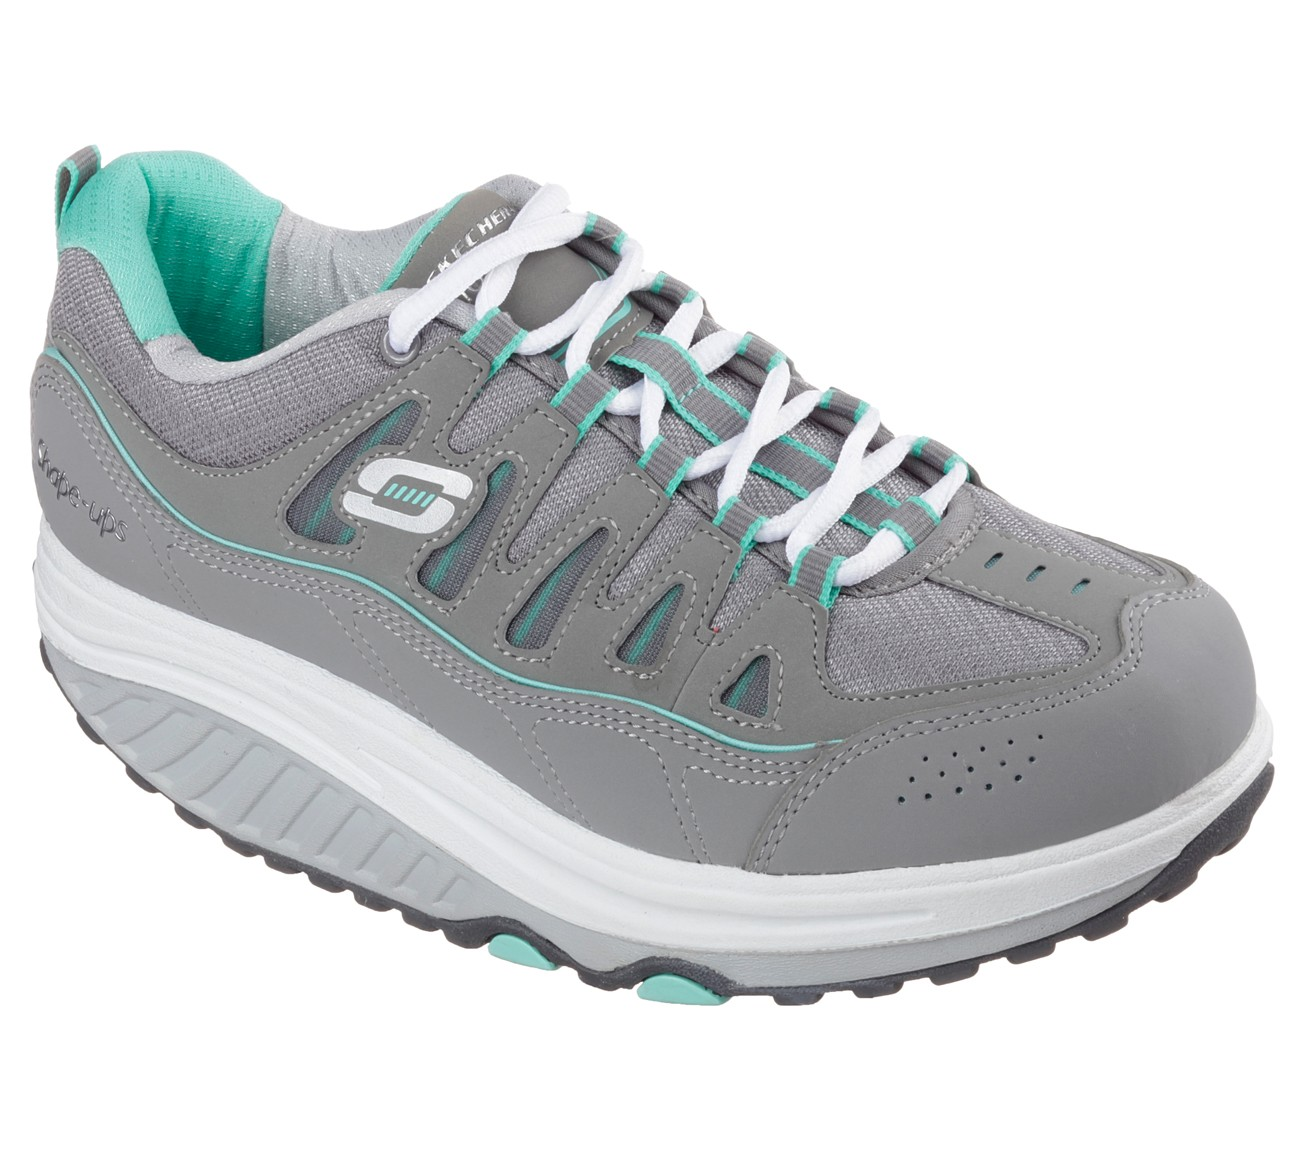 2 Comfort Air Memory Skechers Foam 0 Stride Cooled Shape Ups IxREC